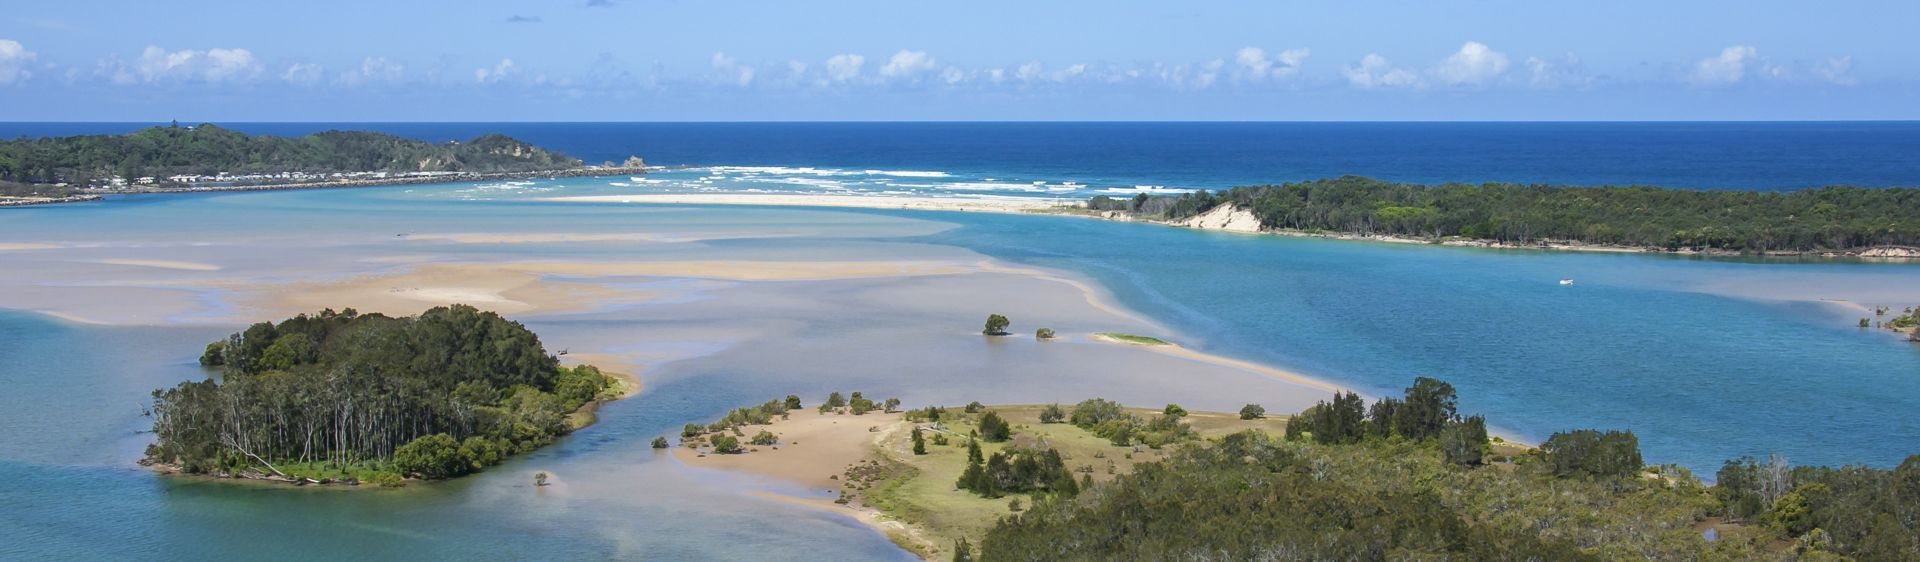 nambucca heads nsw plan a holiday attractions accommodation rh visitnsw com